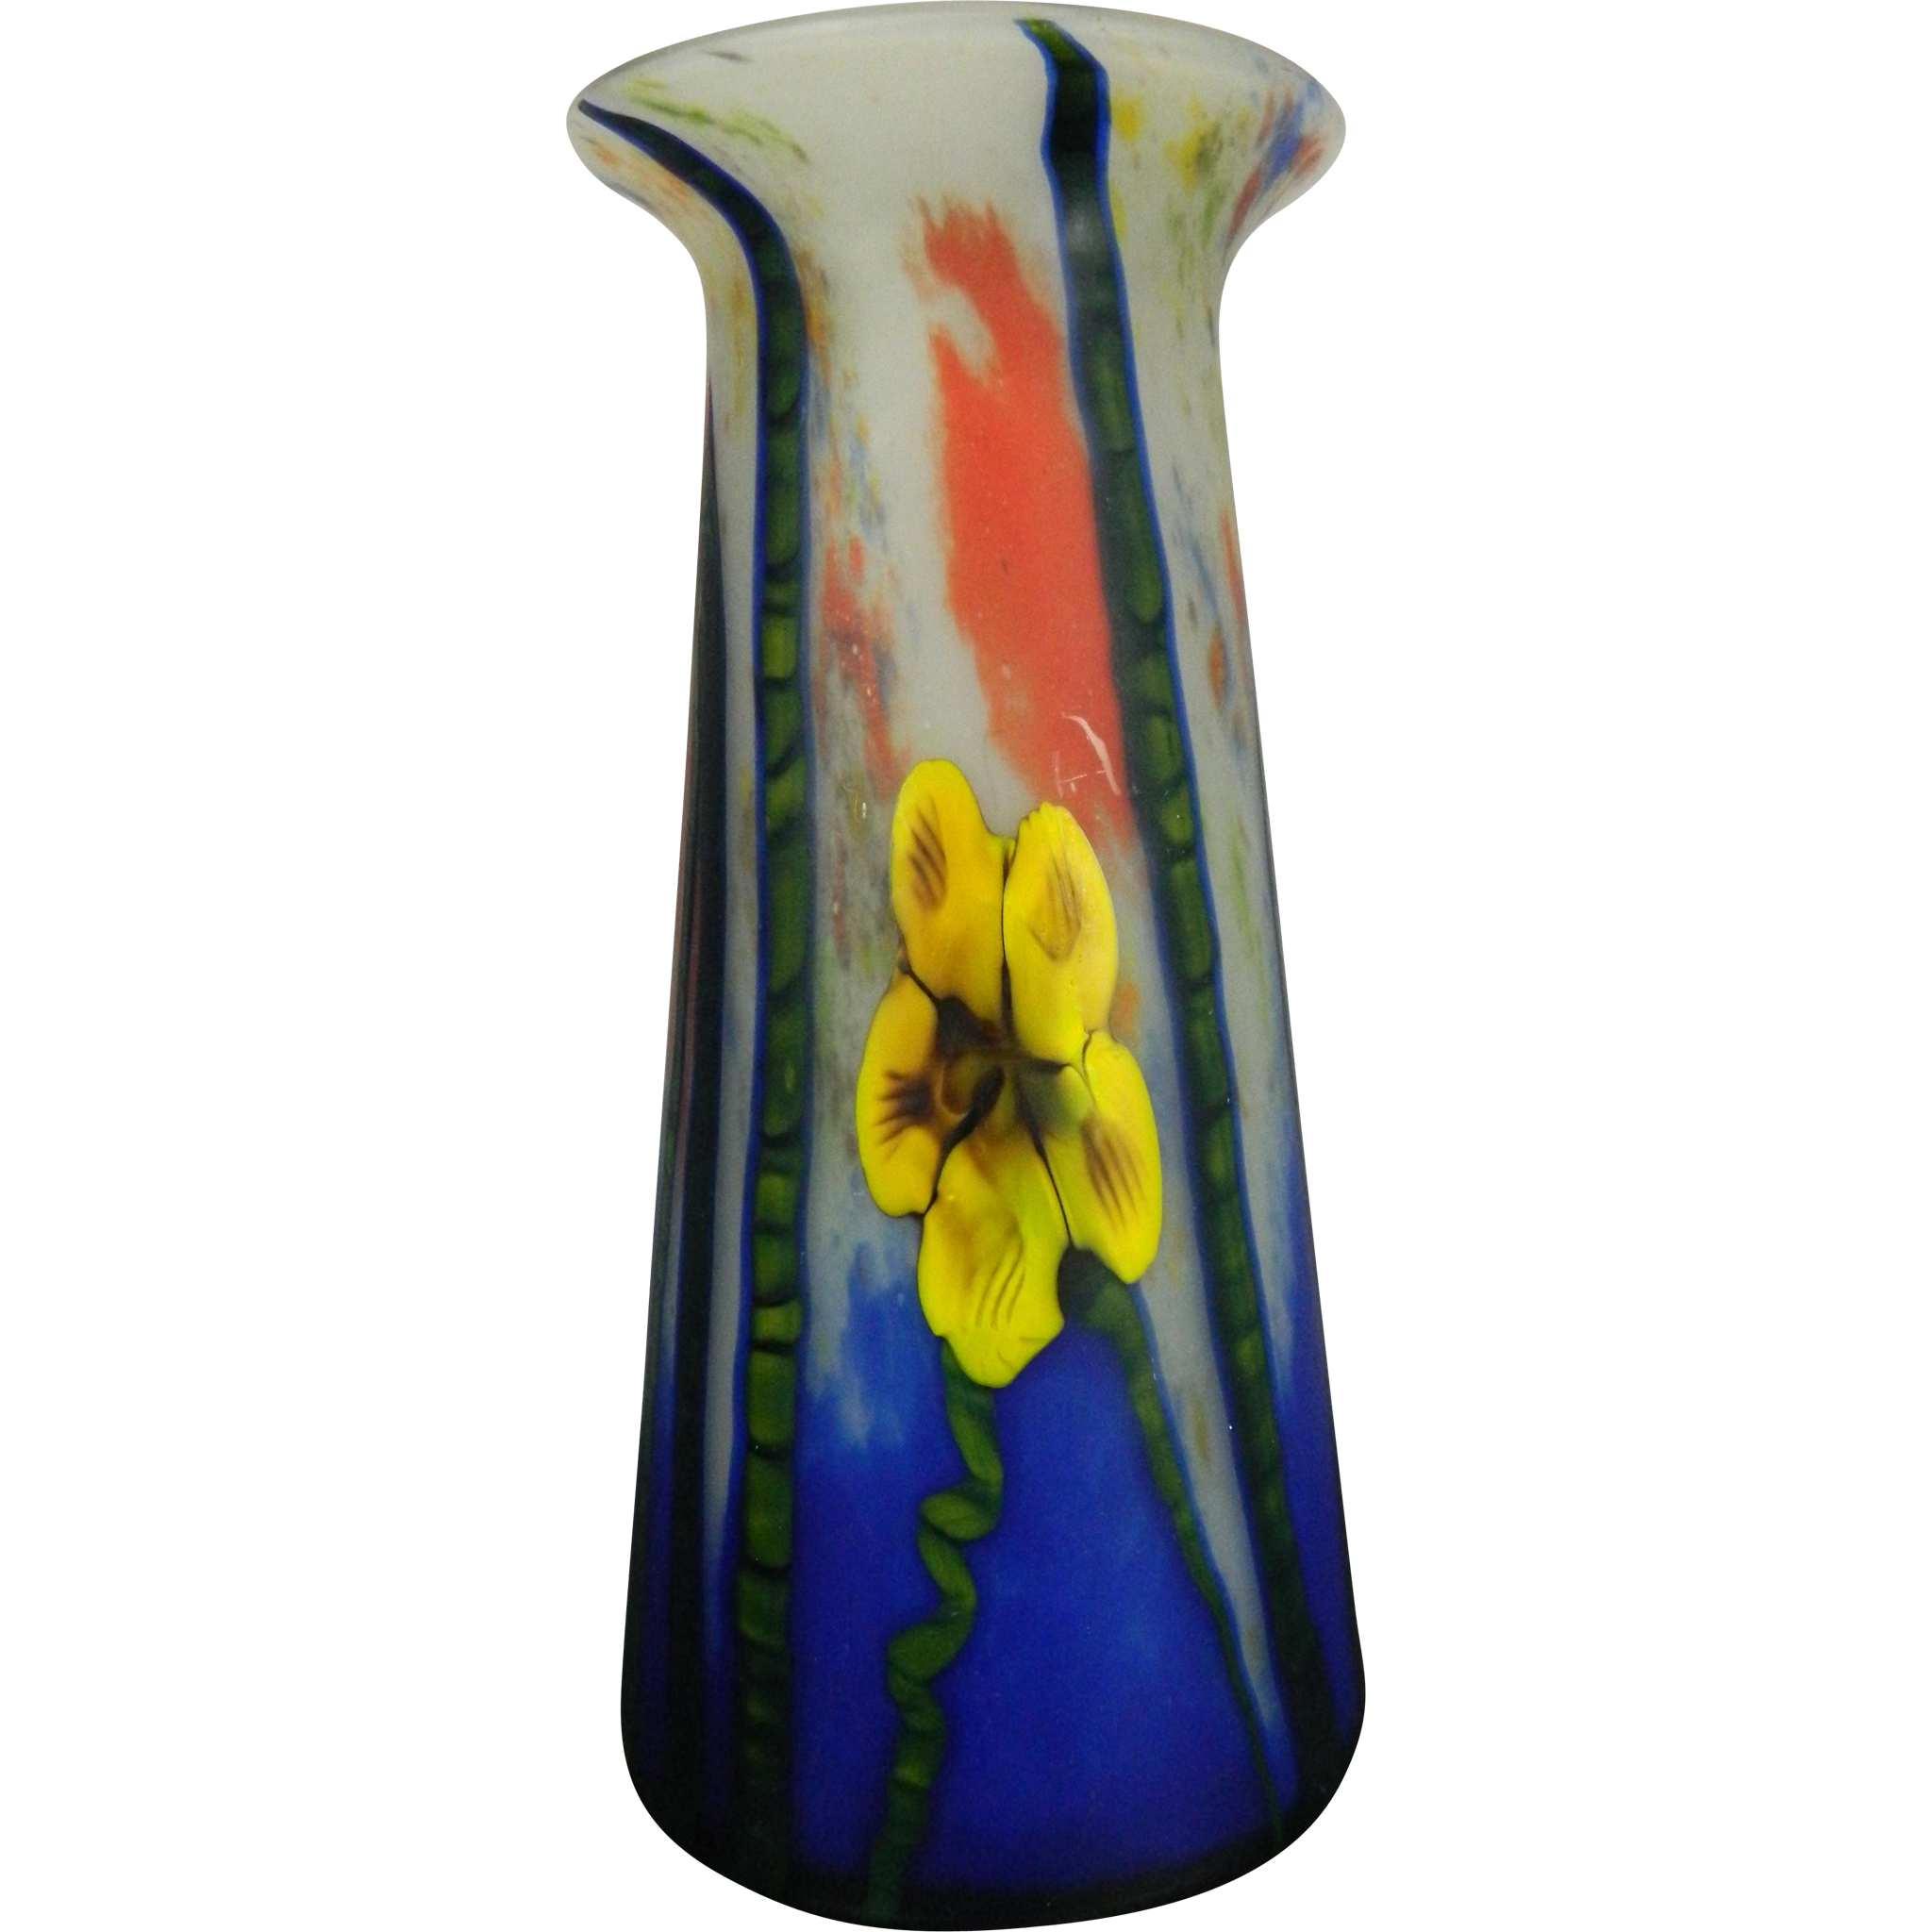 antique art nouveau style flower vase in glass